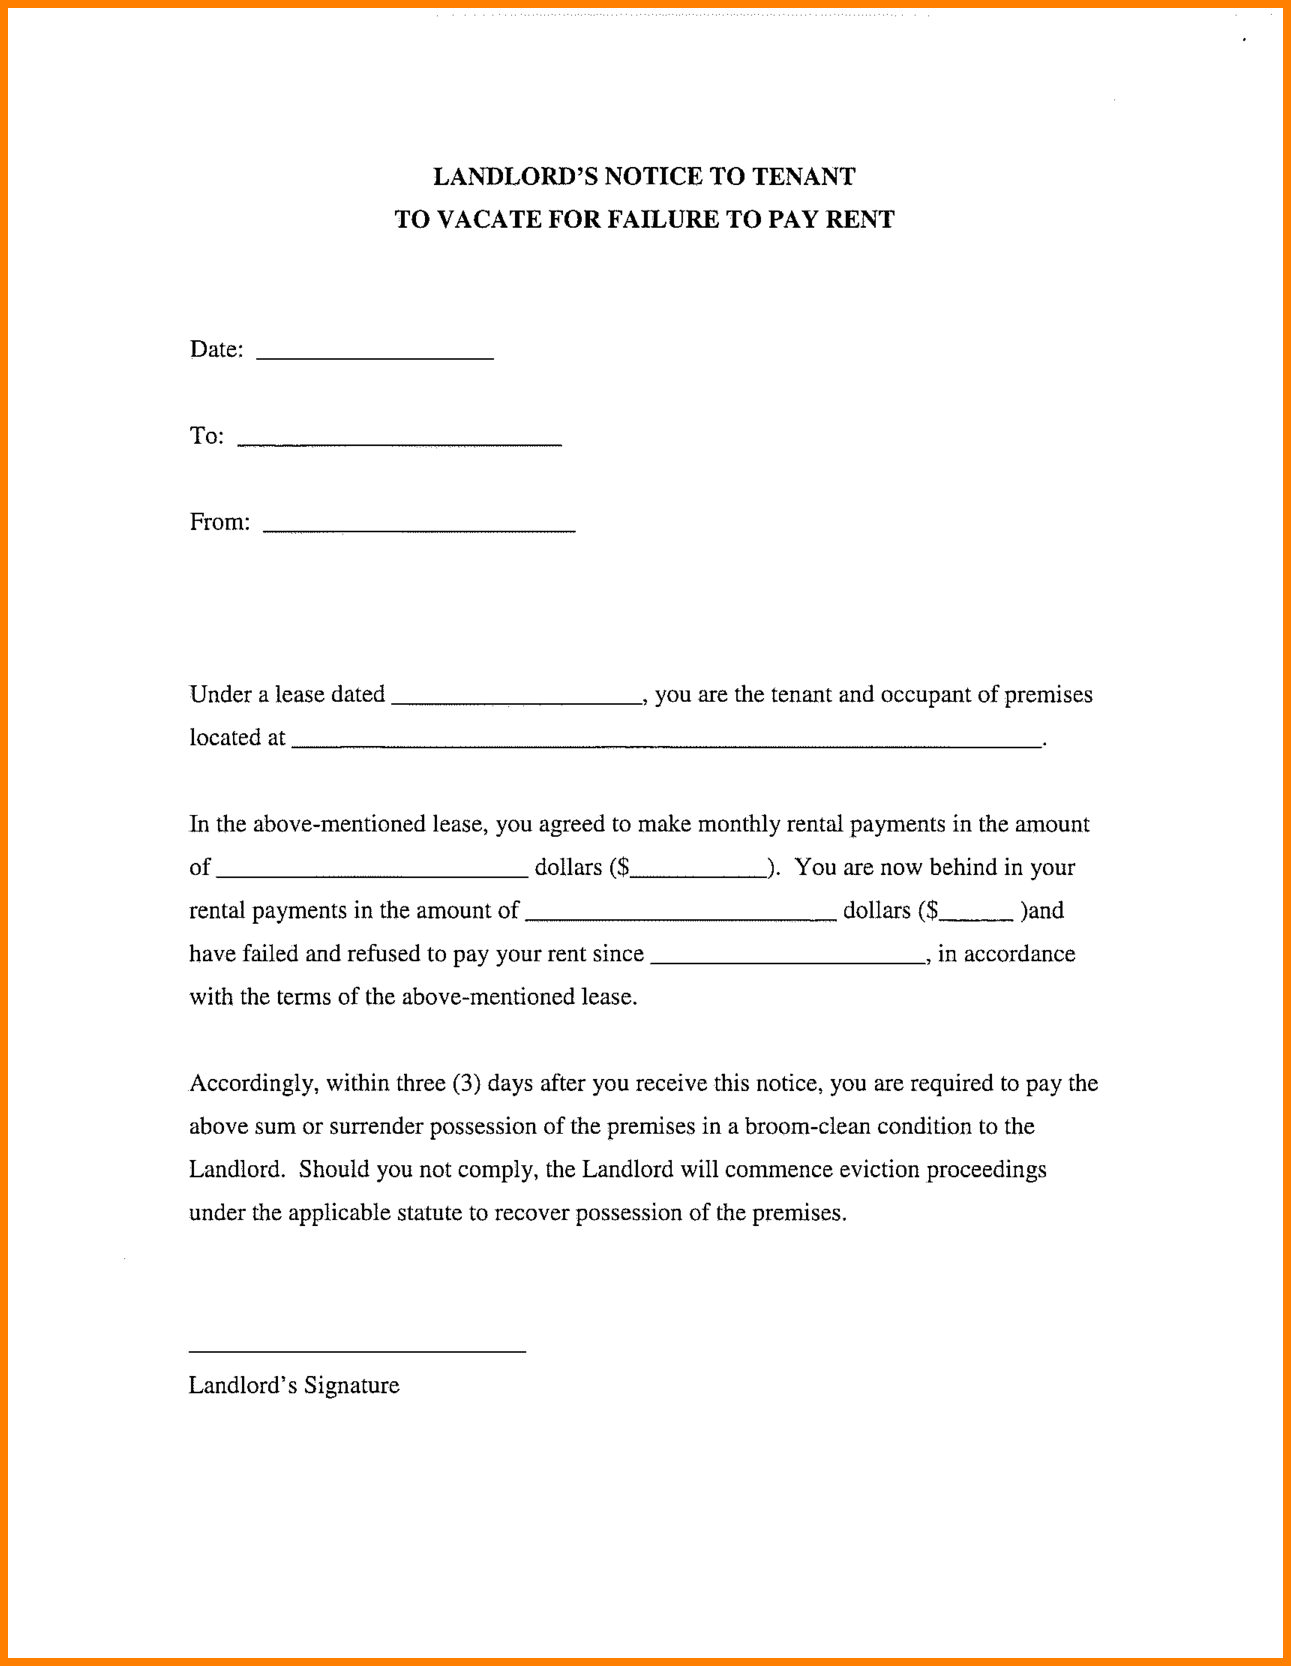 Certification Letter Rental From Landlord Tenant Home Design